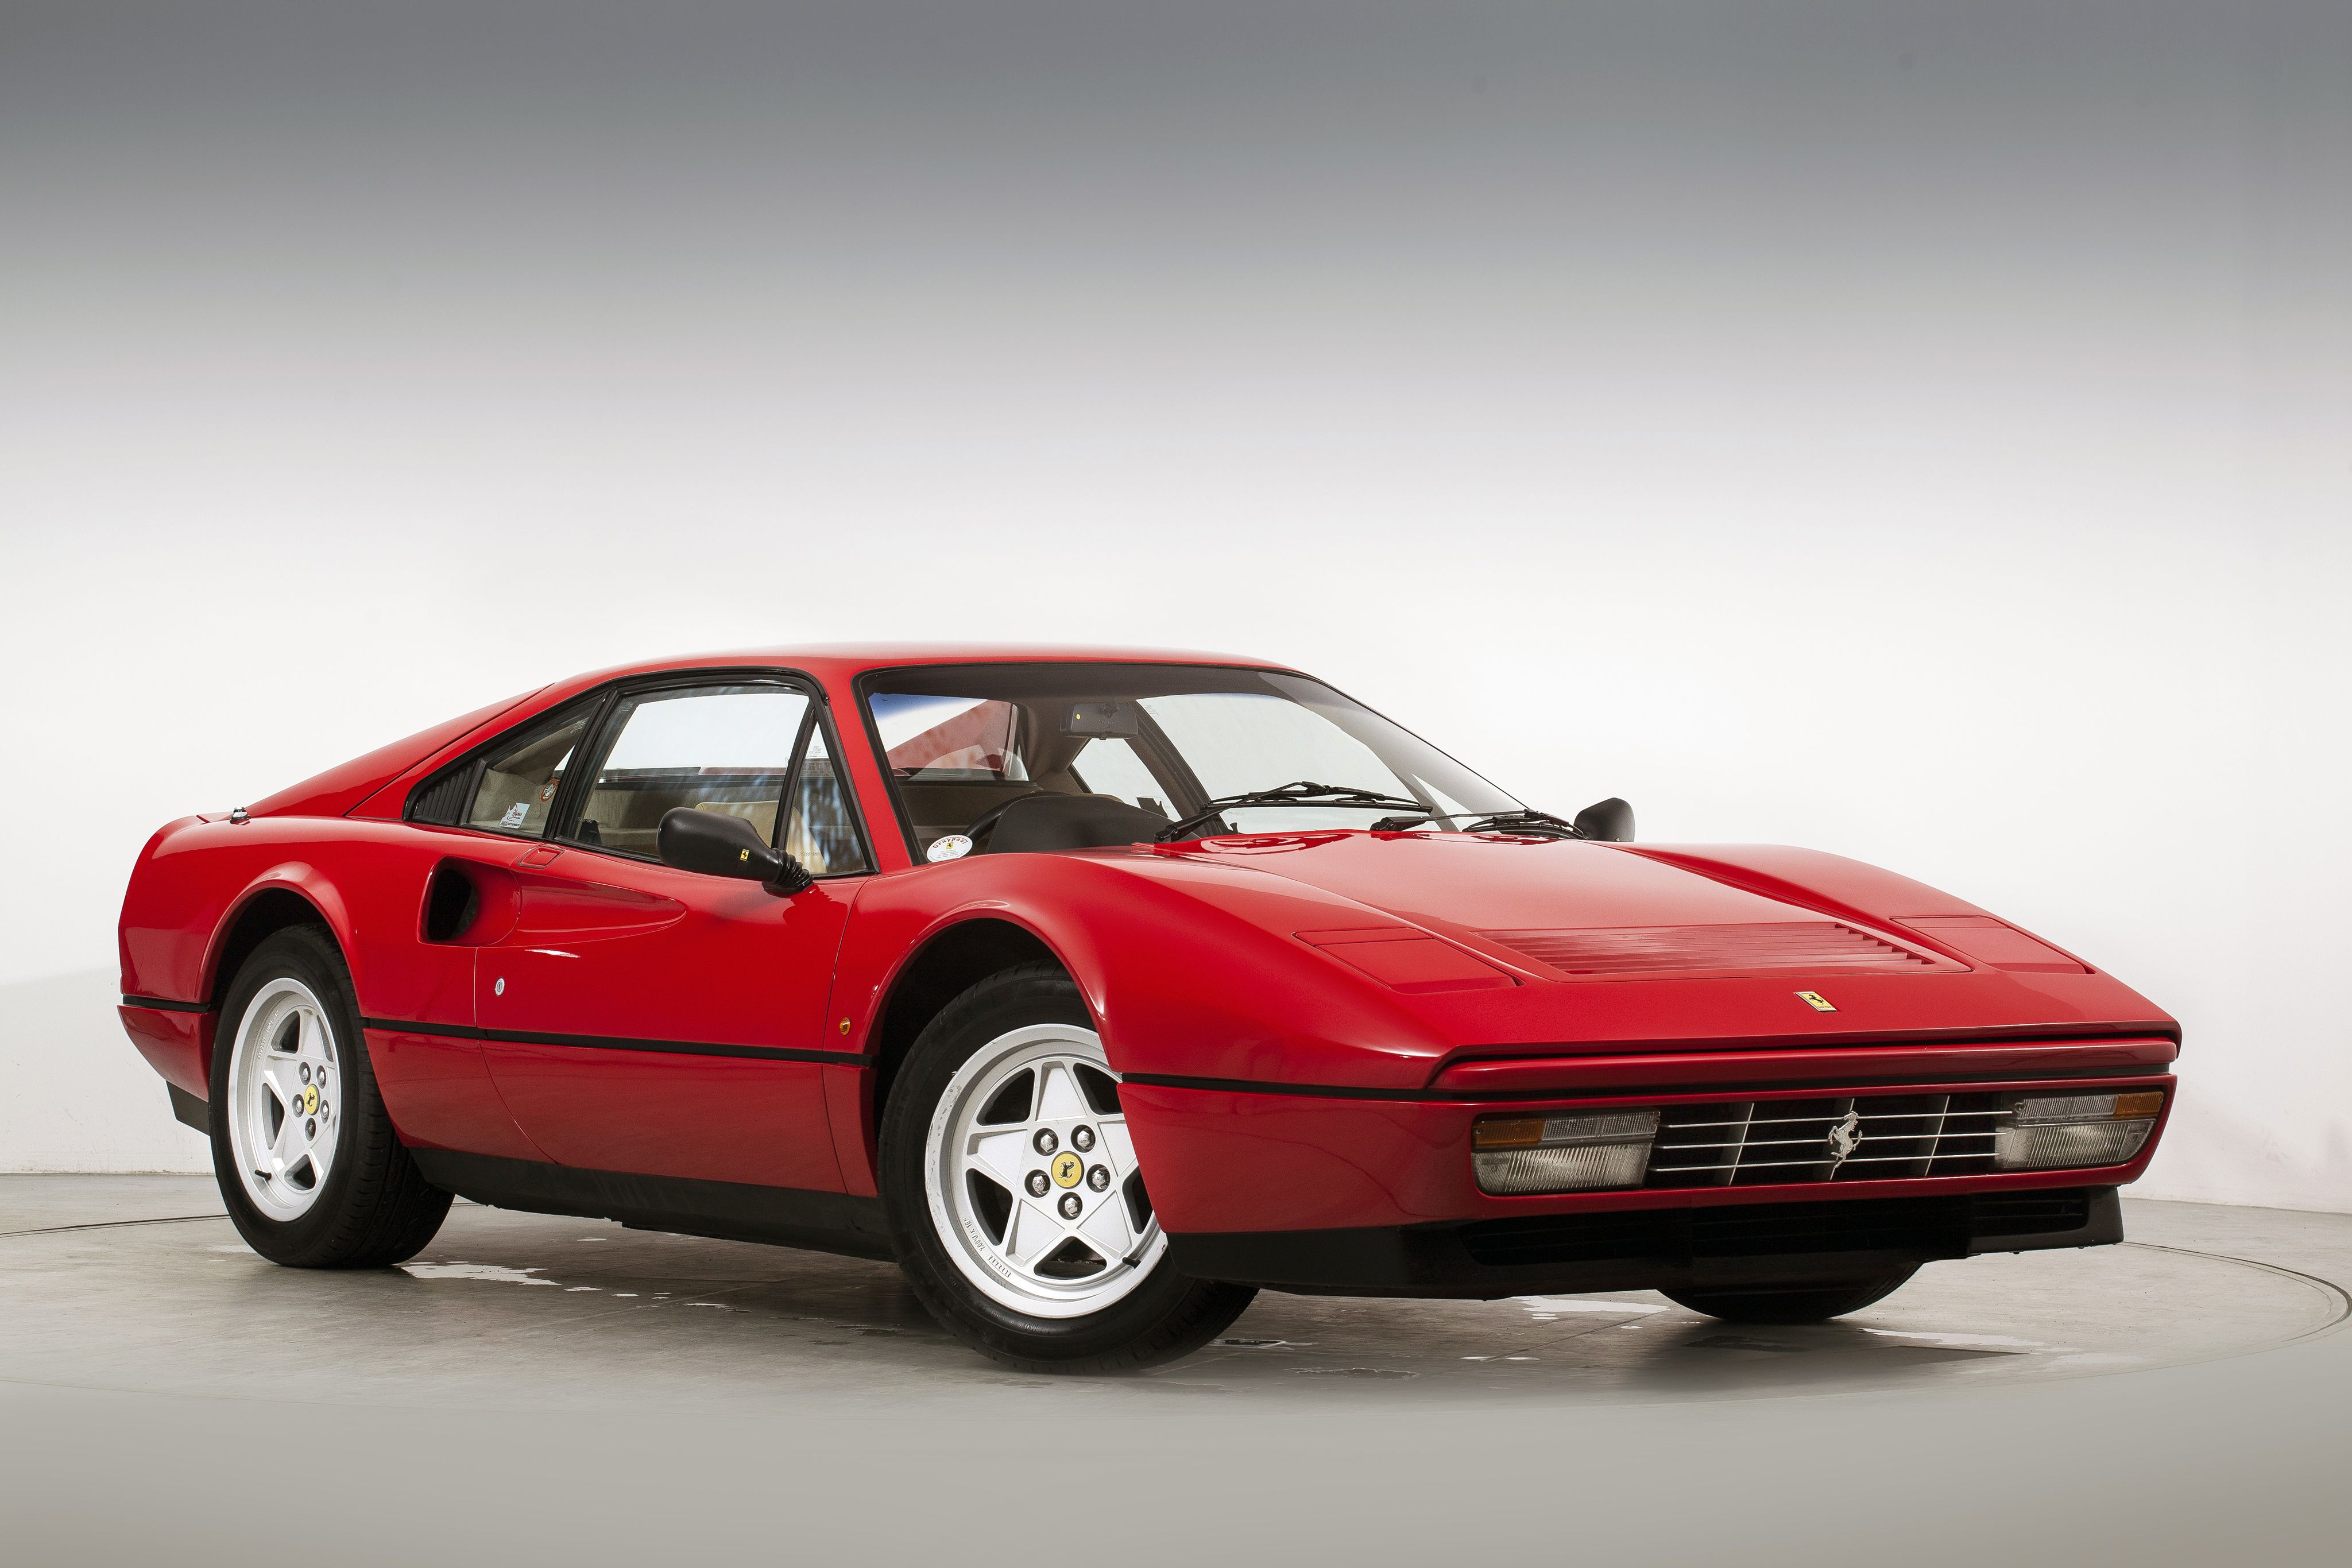 b5c3bf9c76fa4bcbc785025d966f5be4 Interesting 1988 Ferrari Mondial Cabriolet Review Cars Trend